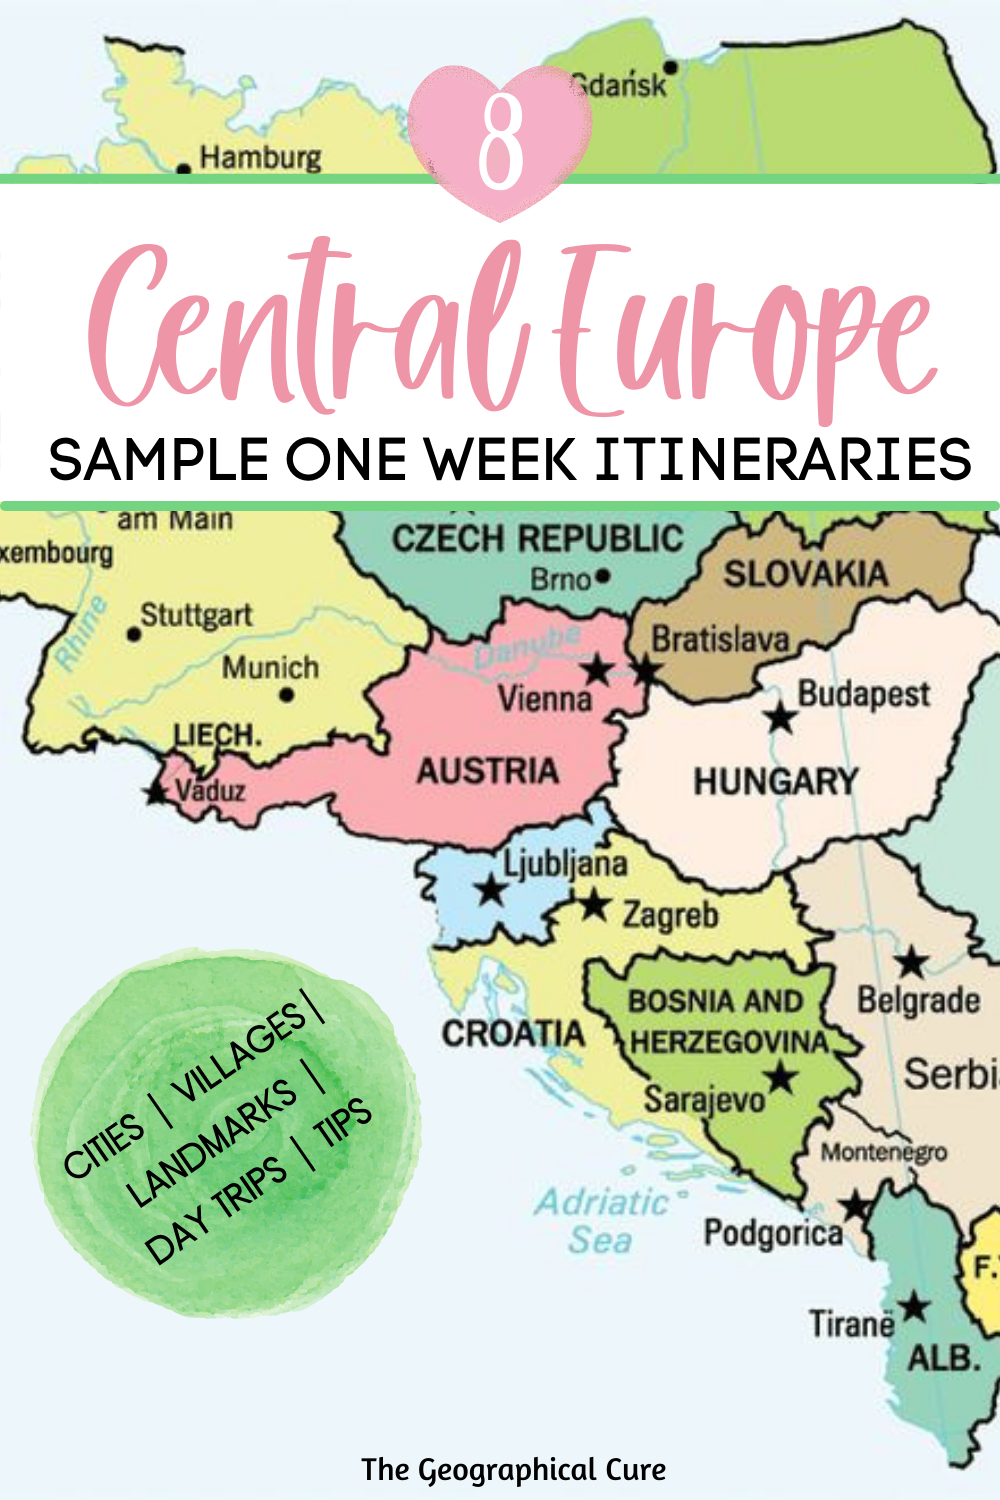 one week itineraries for Central Europe